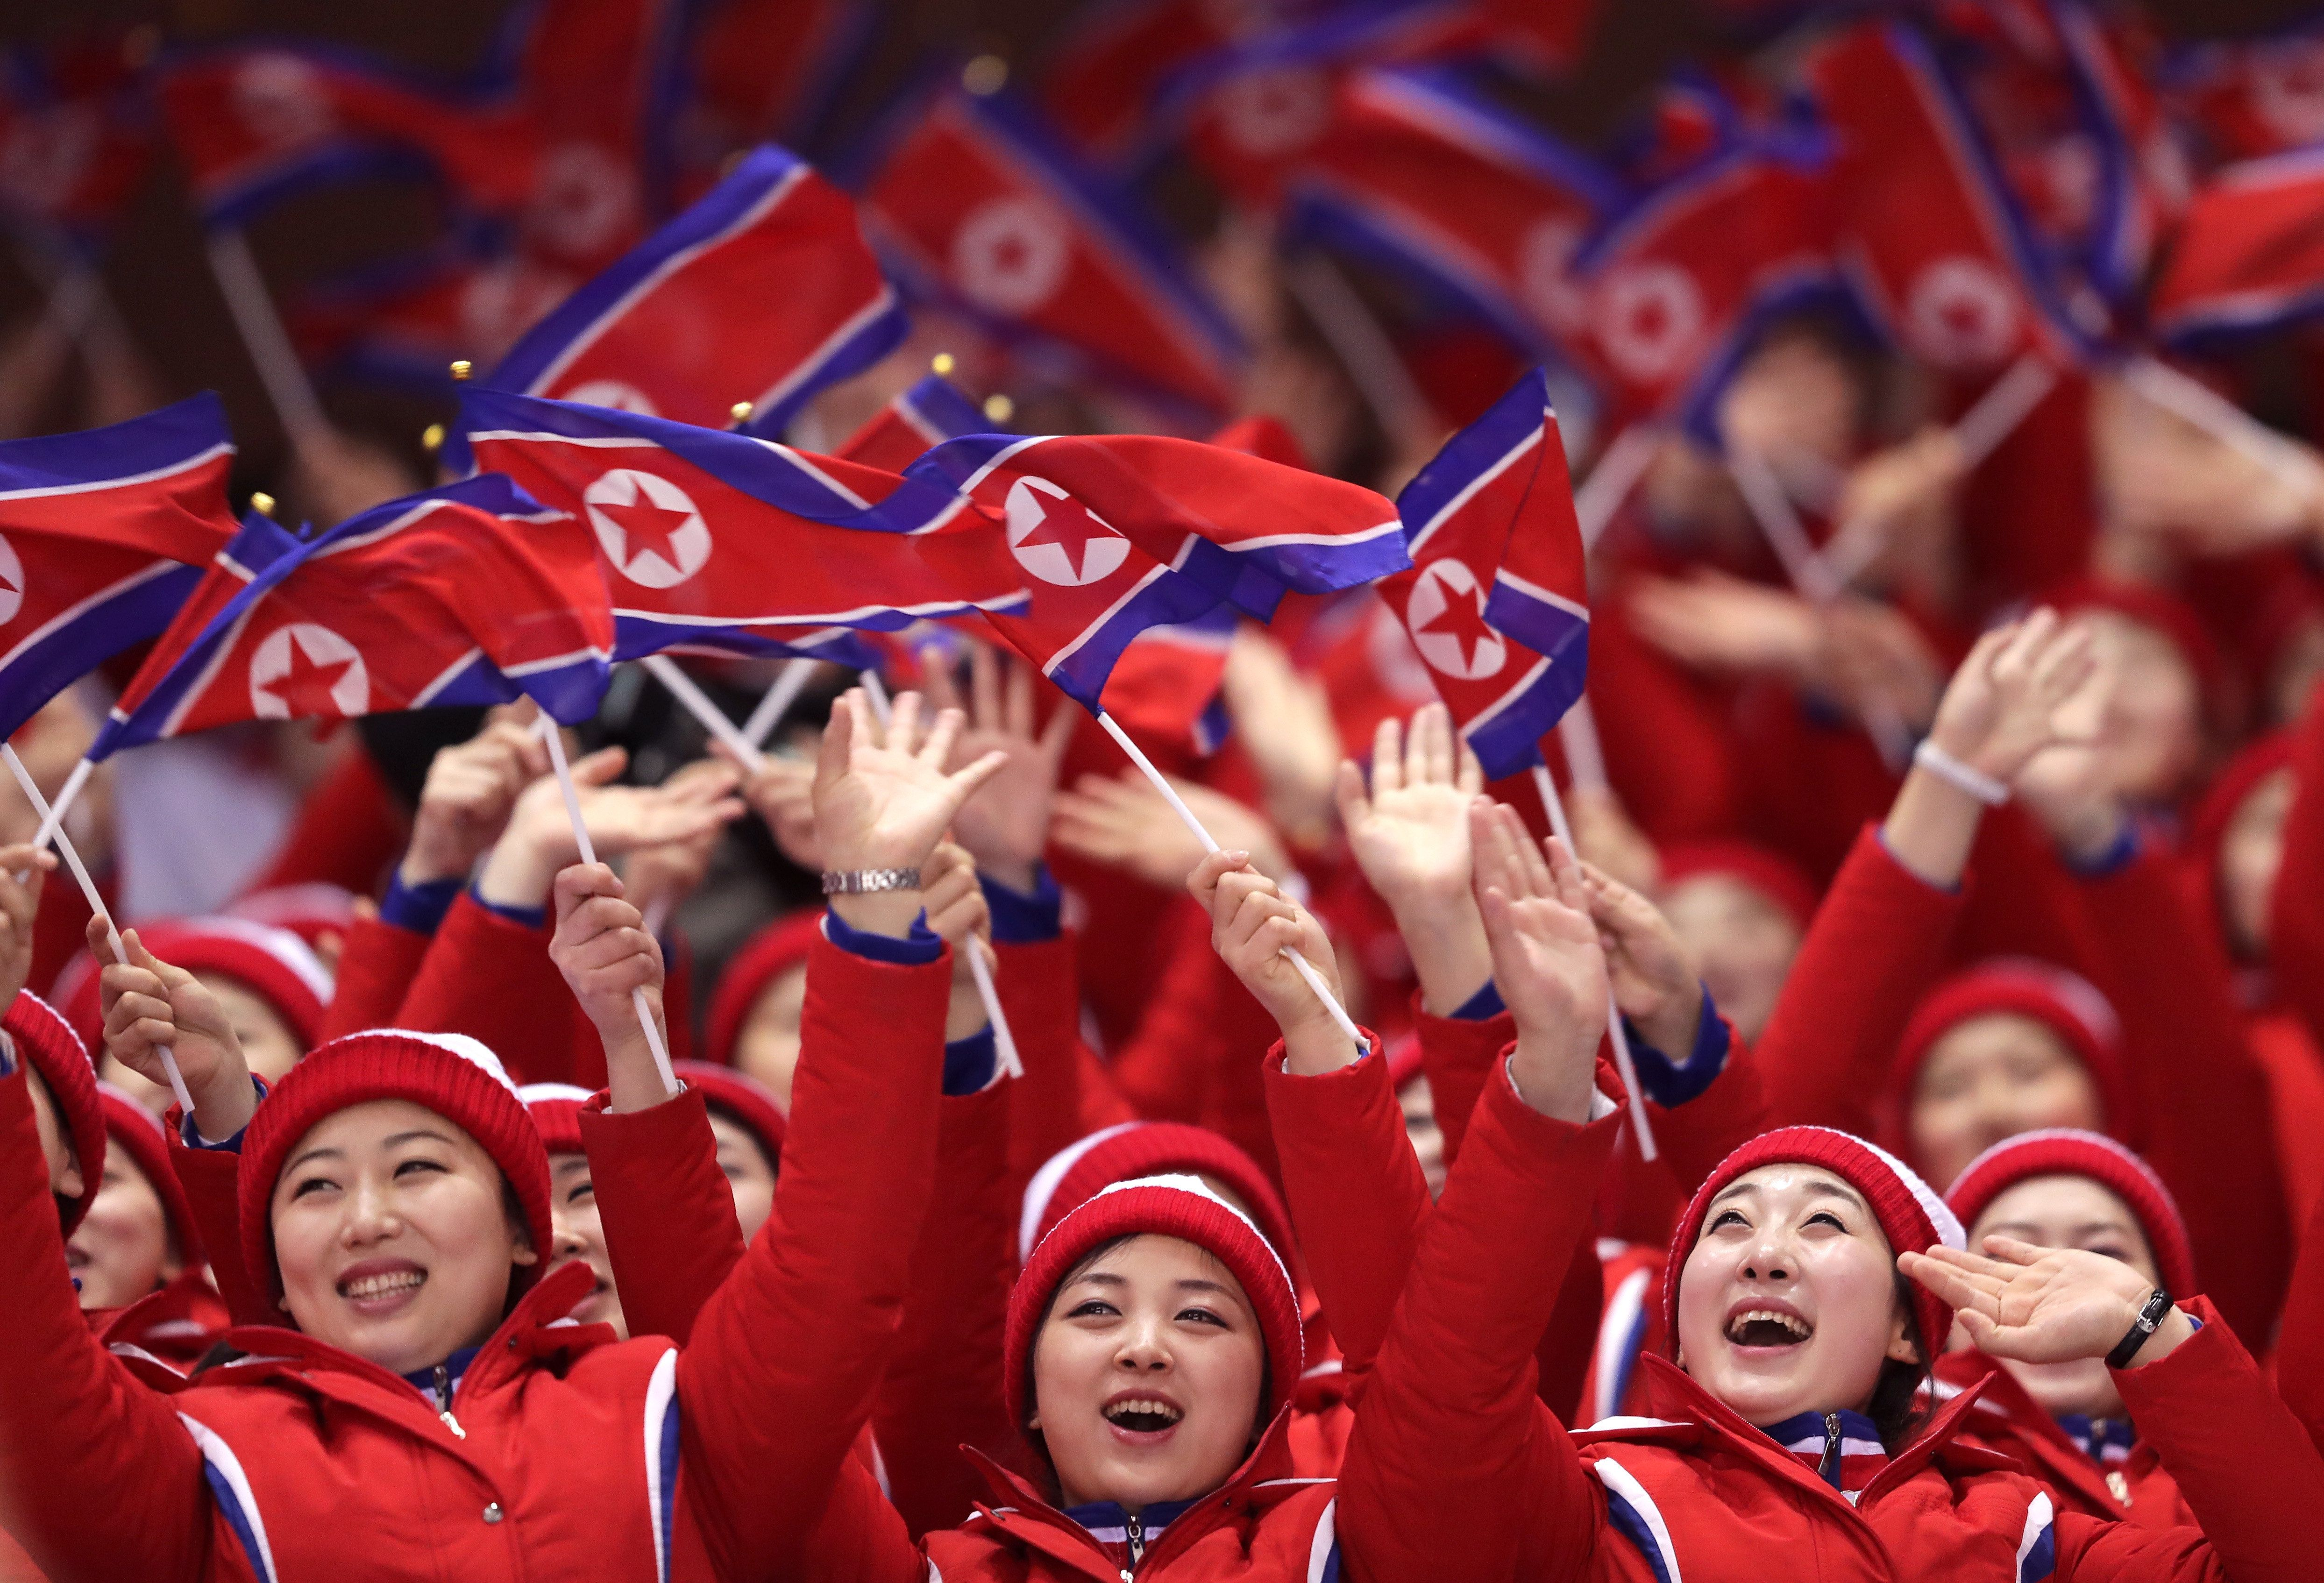 North Korean cheerleaders wave flags during the Pair Skating Short Program on day five of the Pyeongchang 2018 Winter Olympic